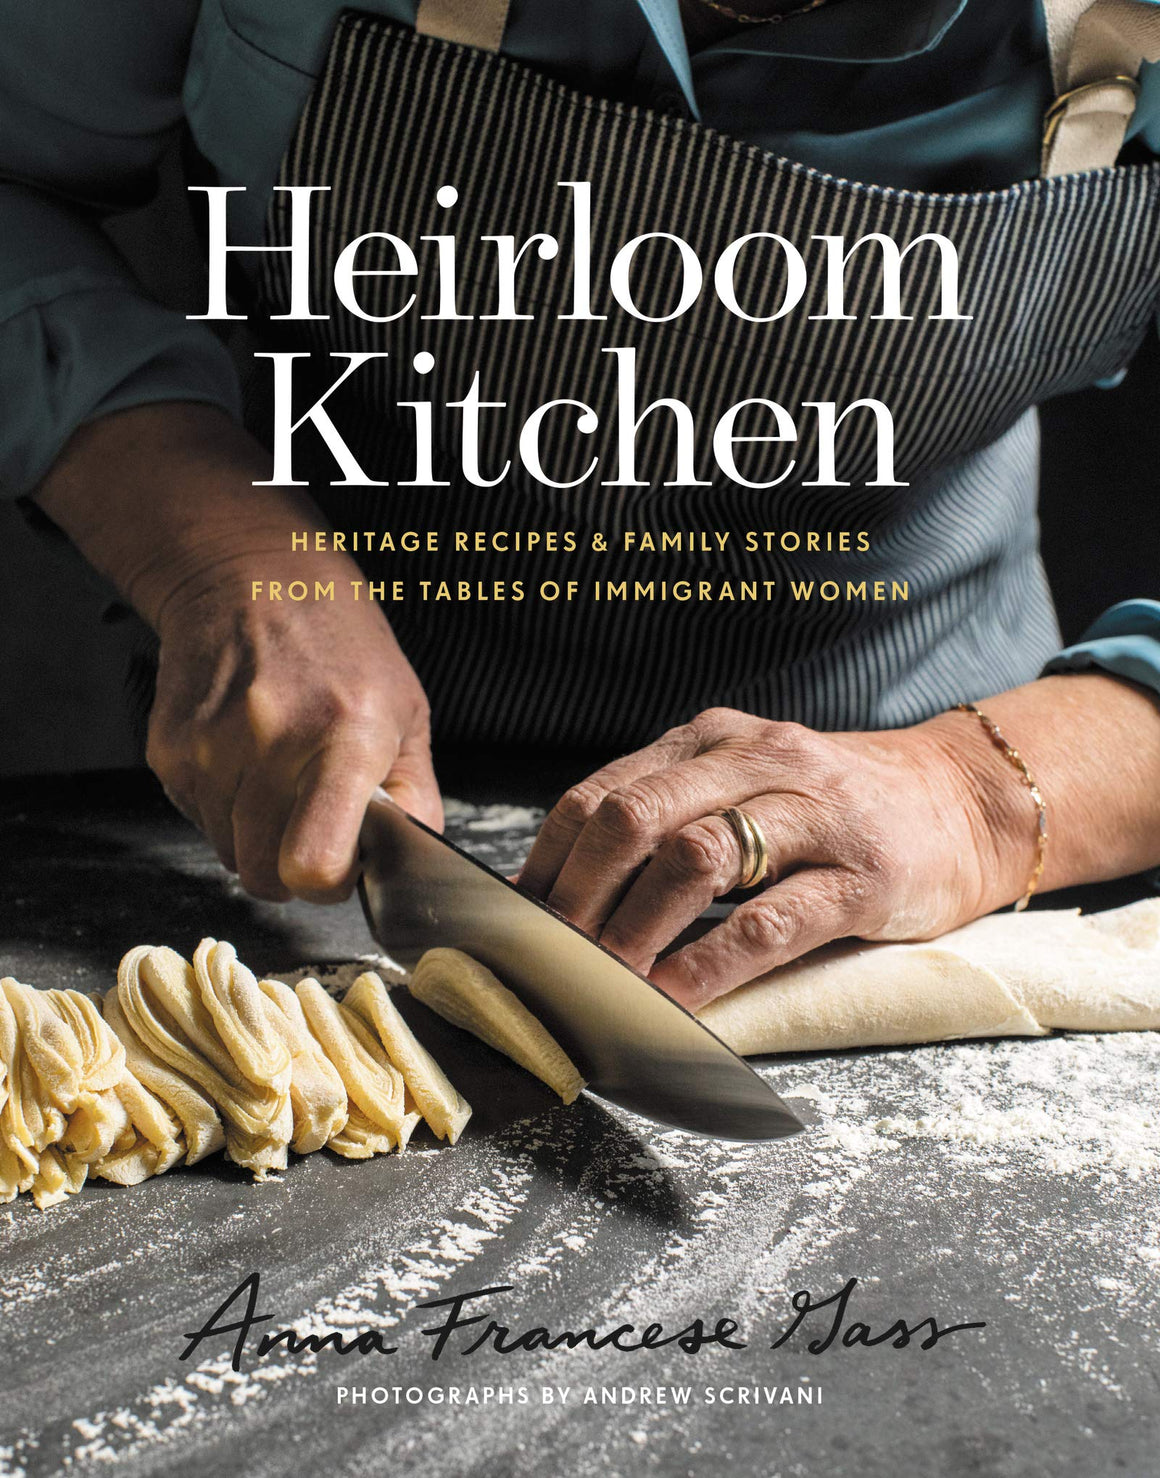 Anna Francese Gass. Heirloom Kitchen: Heritage Recipes and Family Stories from the Tables of Immigrant Women